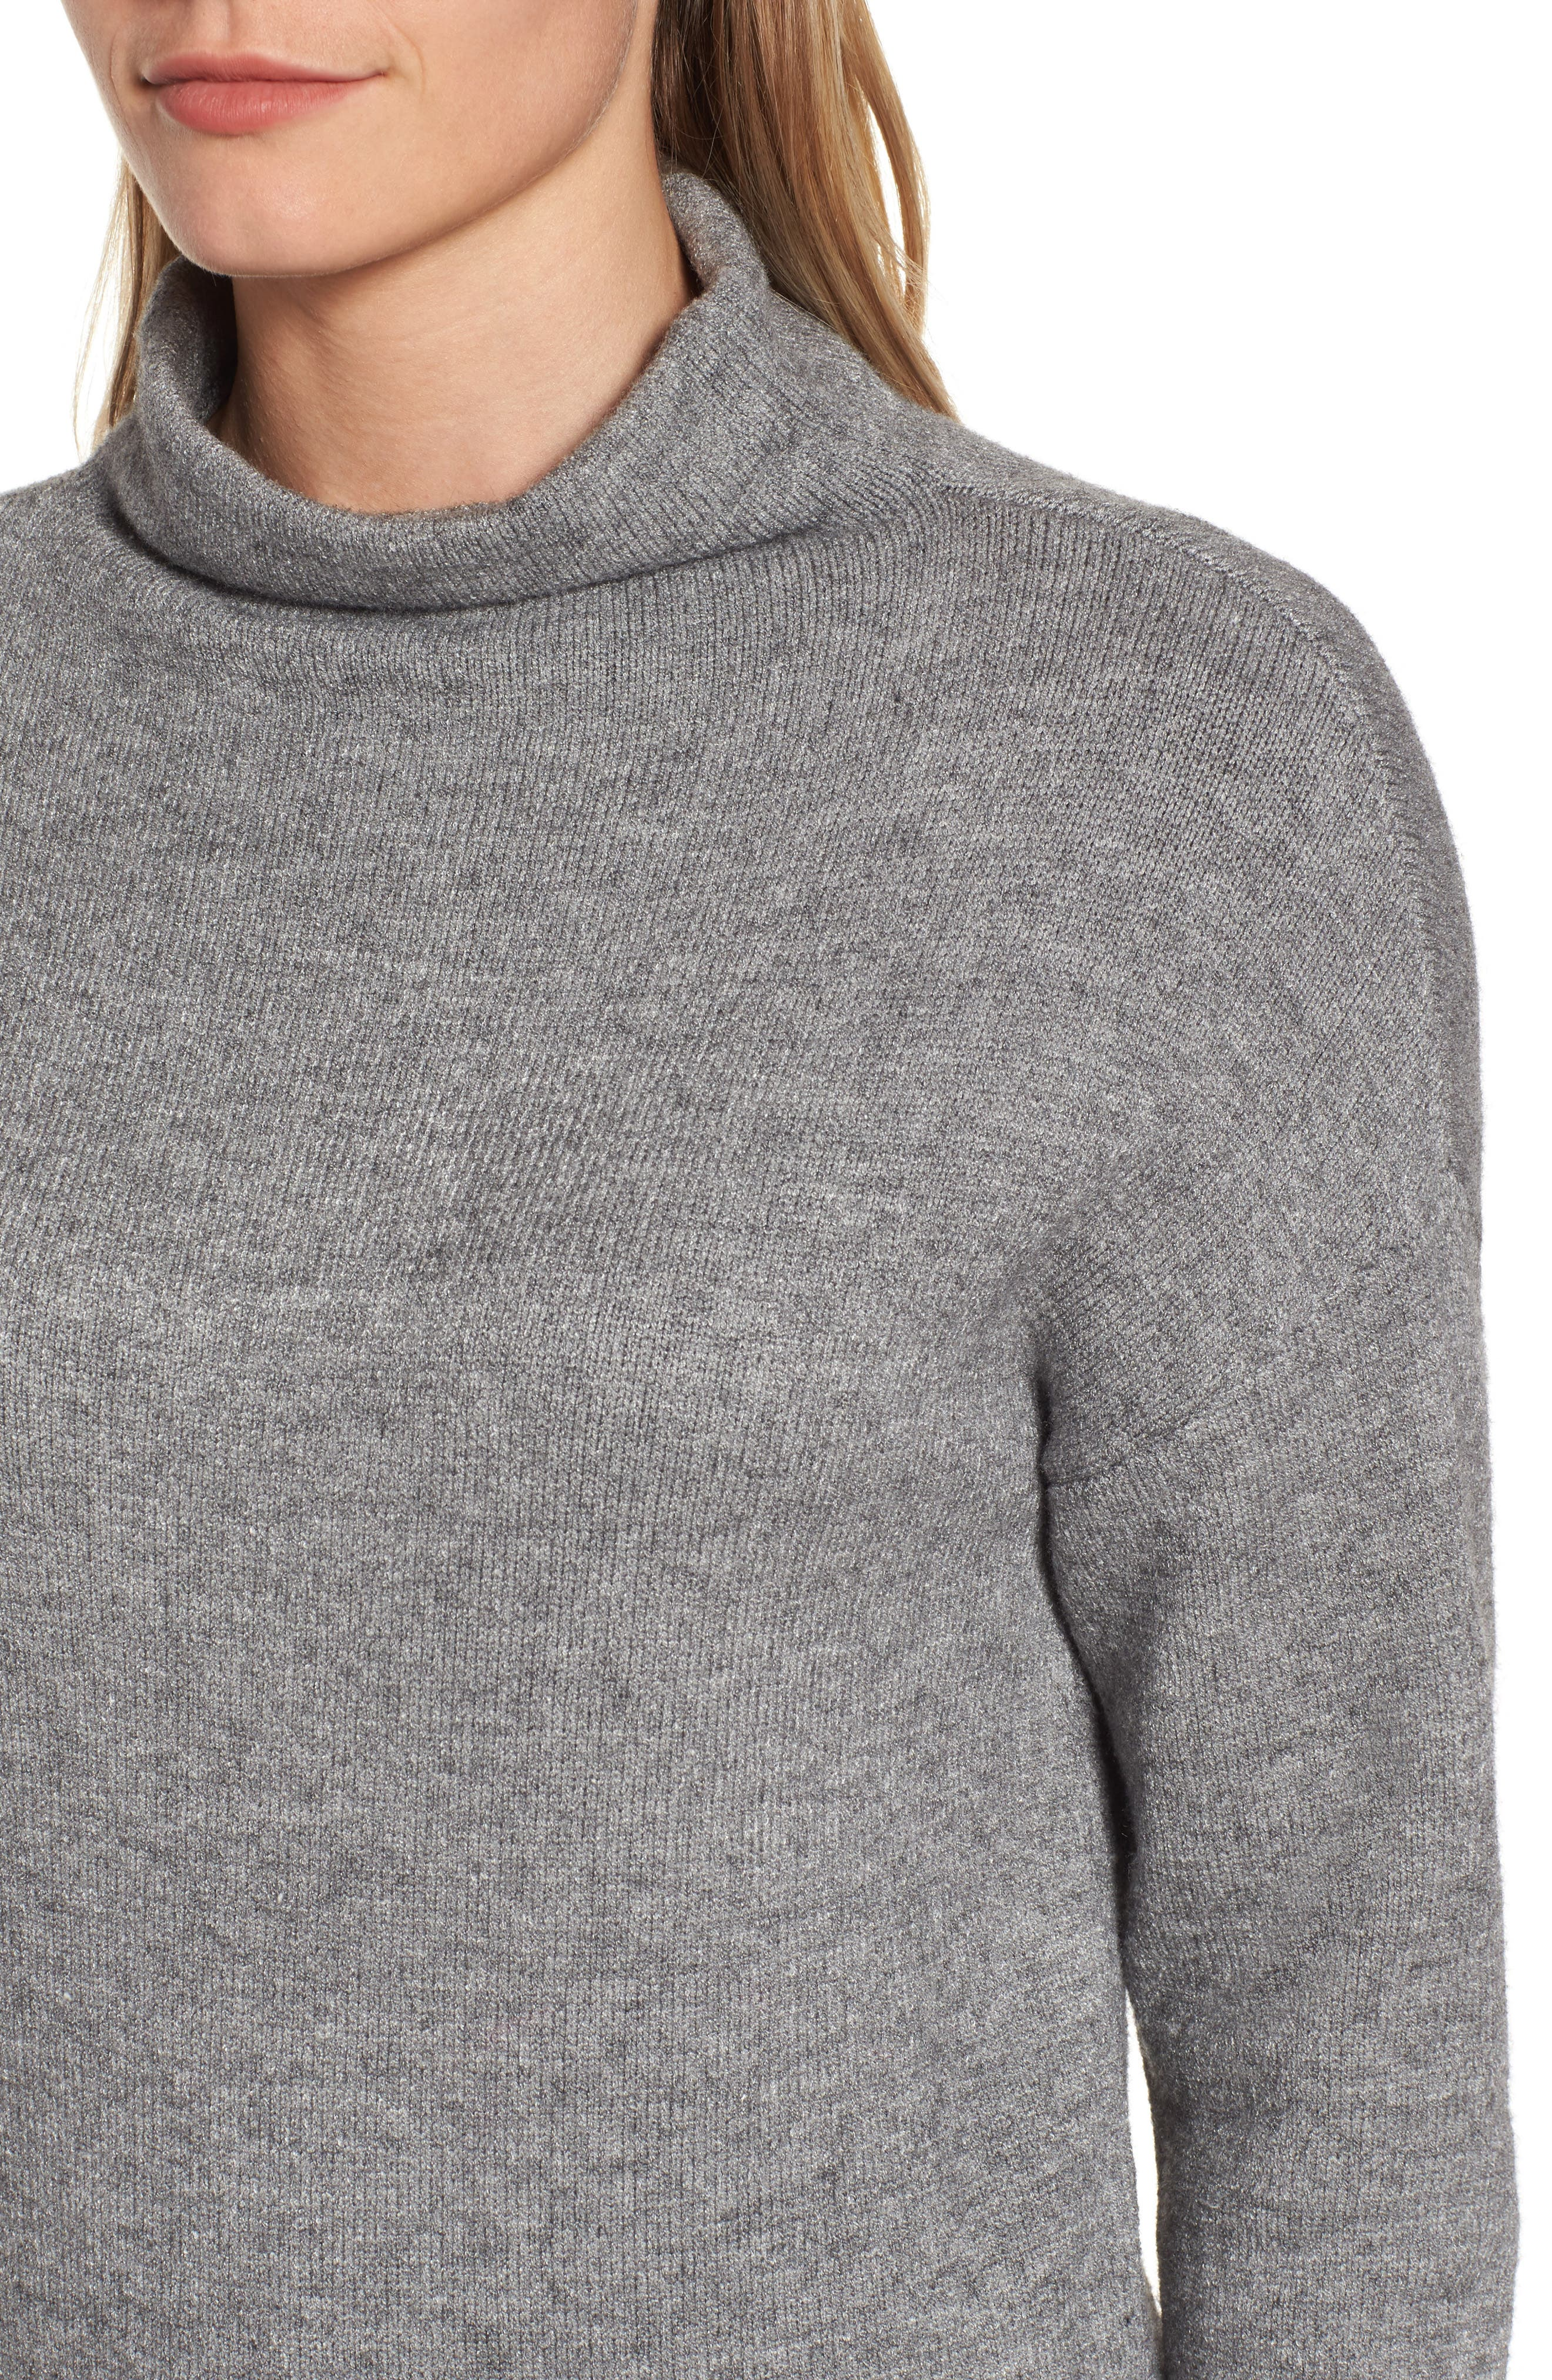 RD Style Funnel Neck Sweater,                             Alternate thumbnail 4, color,                             030